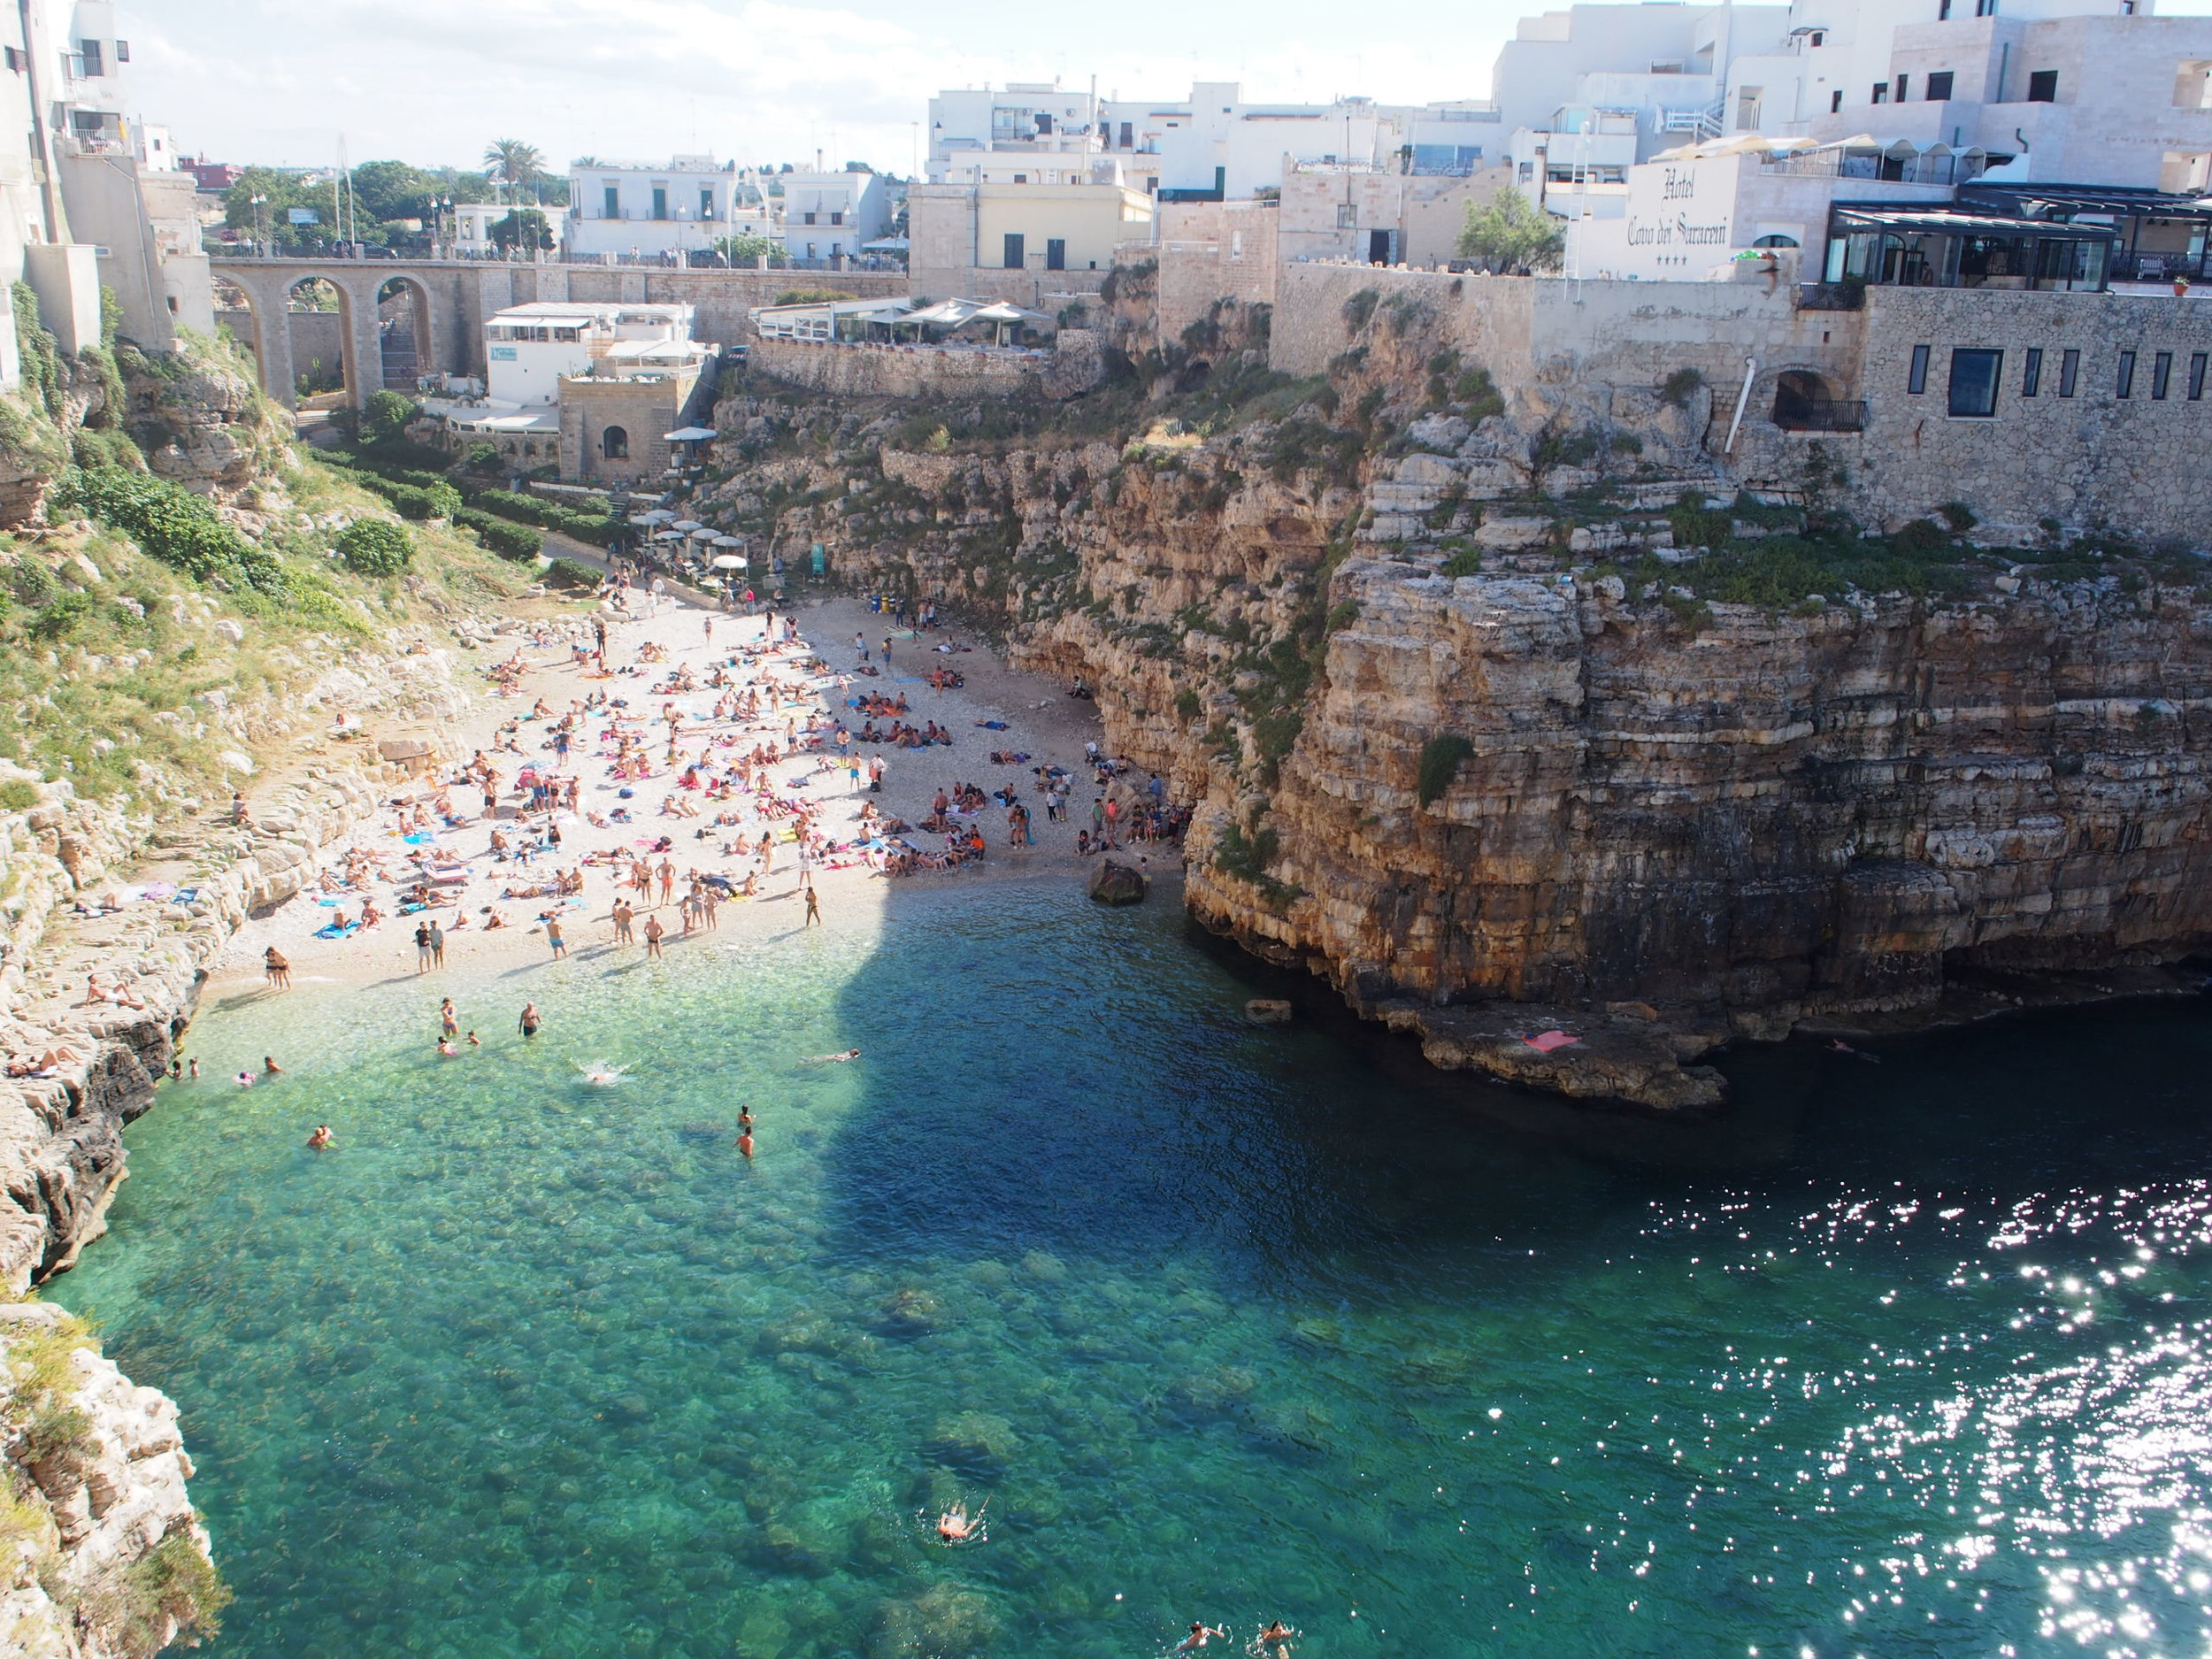 A true discovery, Polignano a Mare rises vertically above the Adriatic Sea. This amazing beach was the official setting for the Red Bull Cliff Diving World Series in 2015.